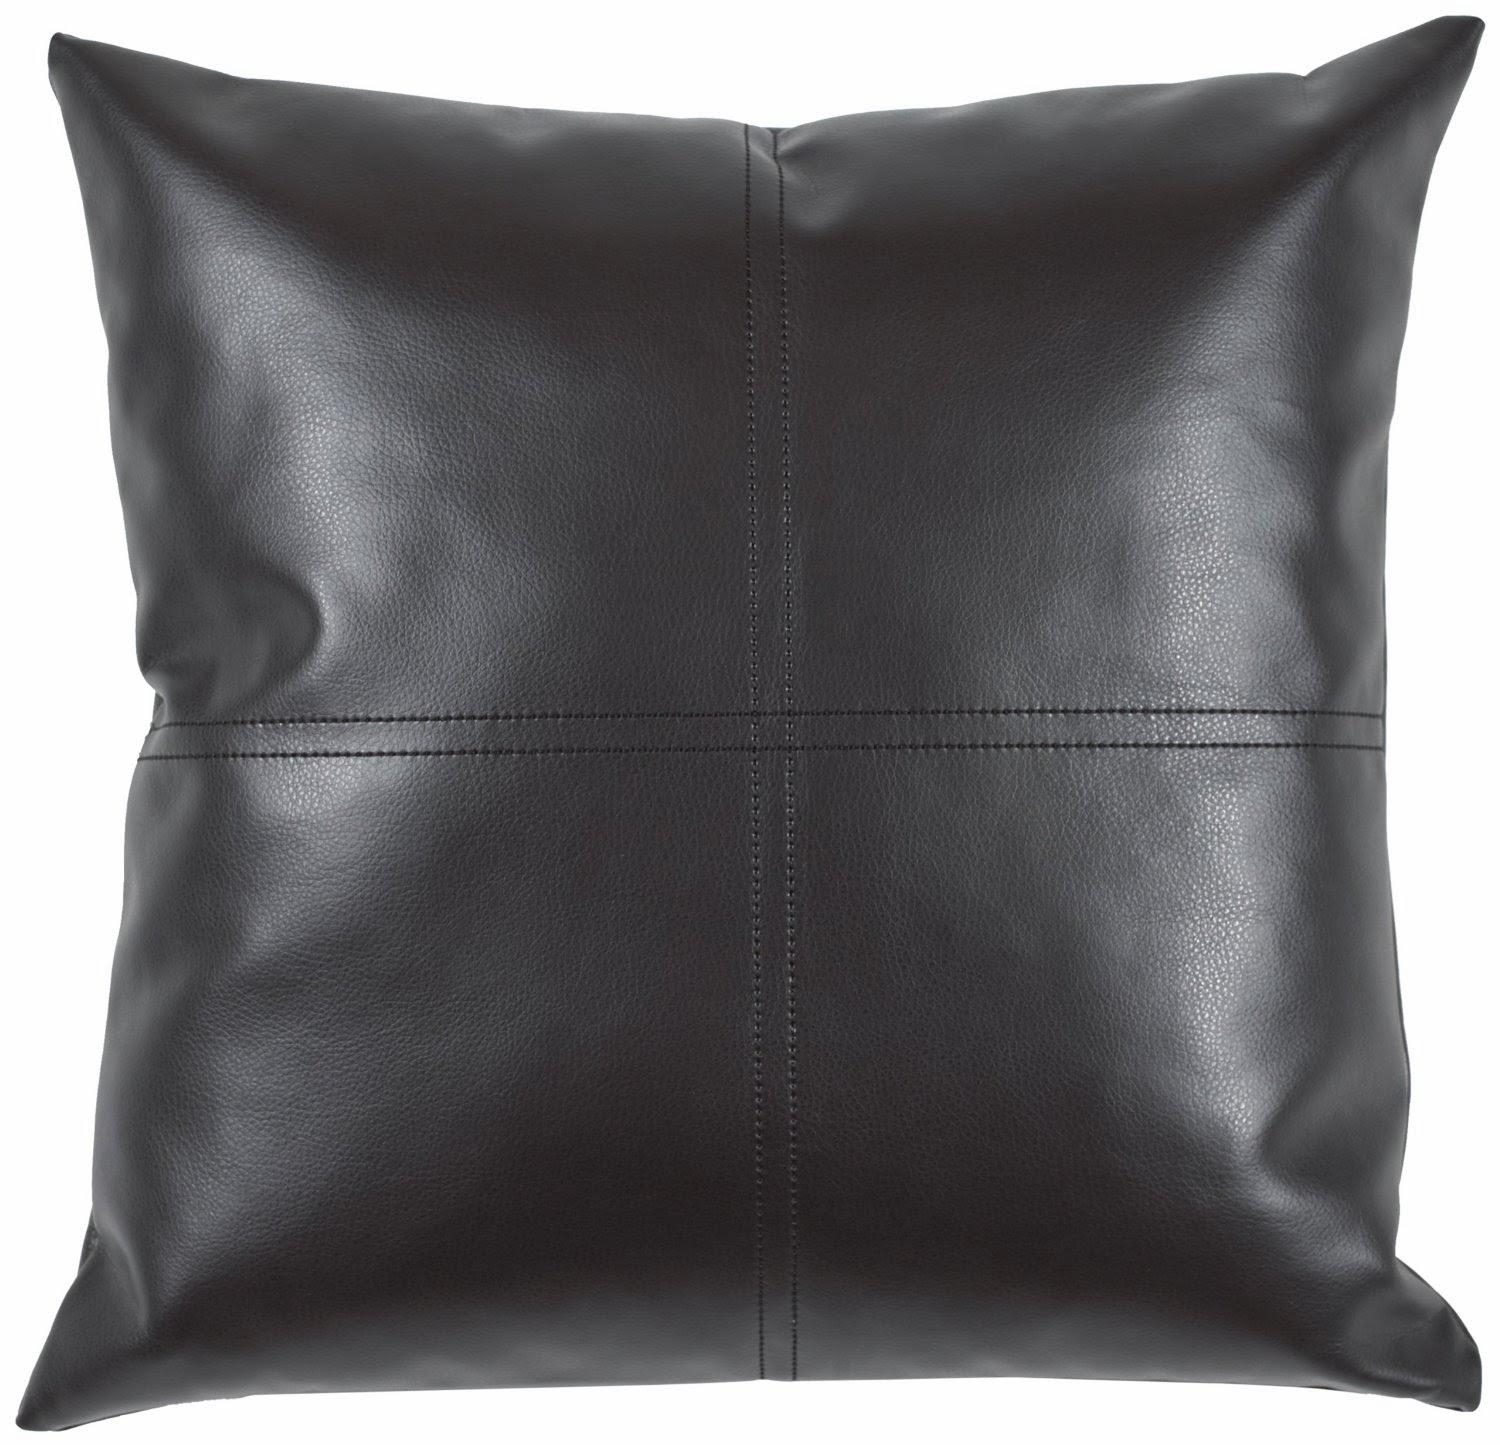 Sofas Center : Sofa Cushion Cover Covers Haha Pillow Headrest In Sofa Cushion Covers (View 6 of 20)